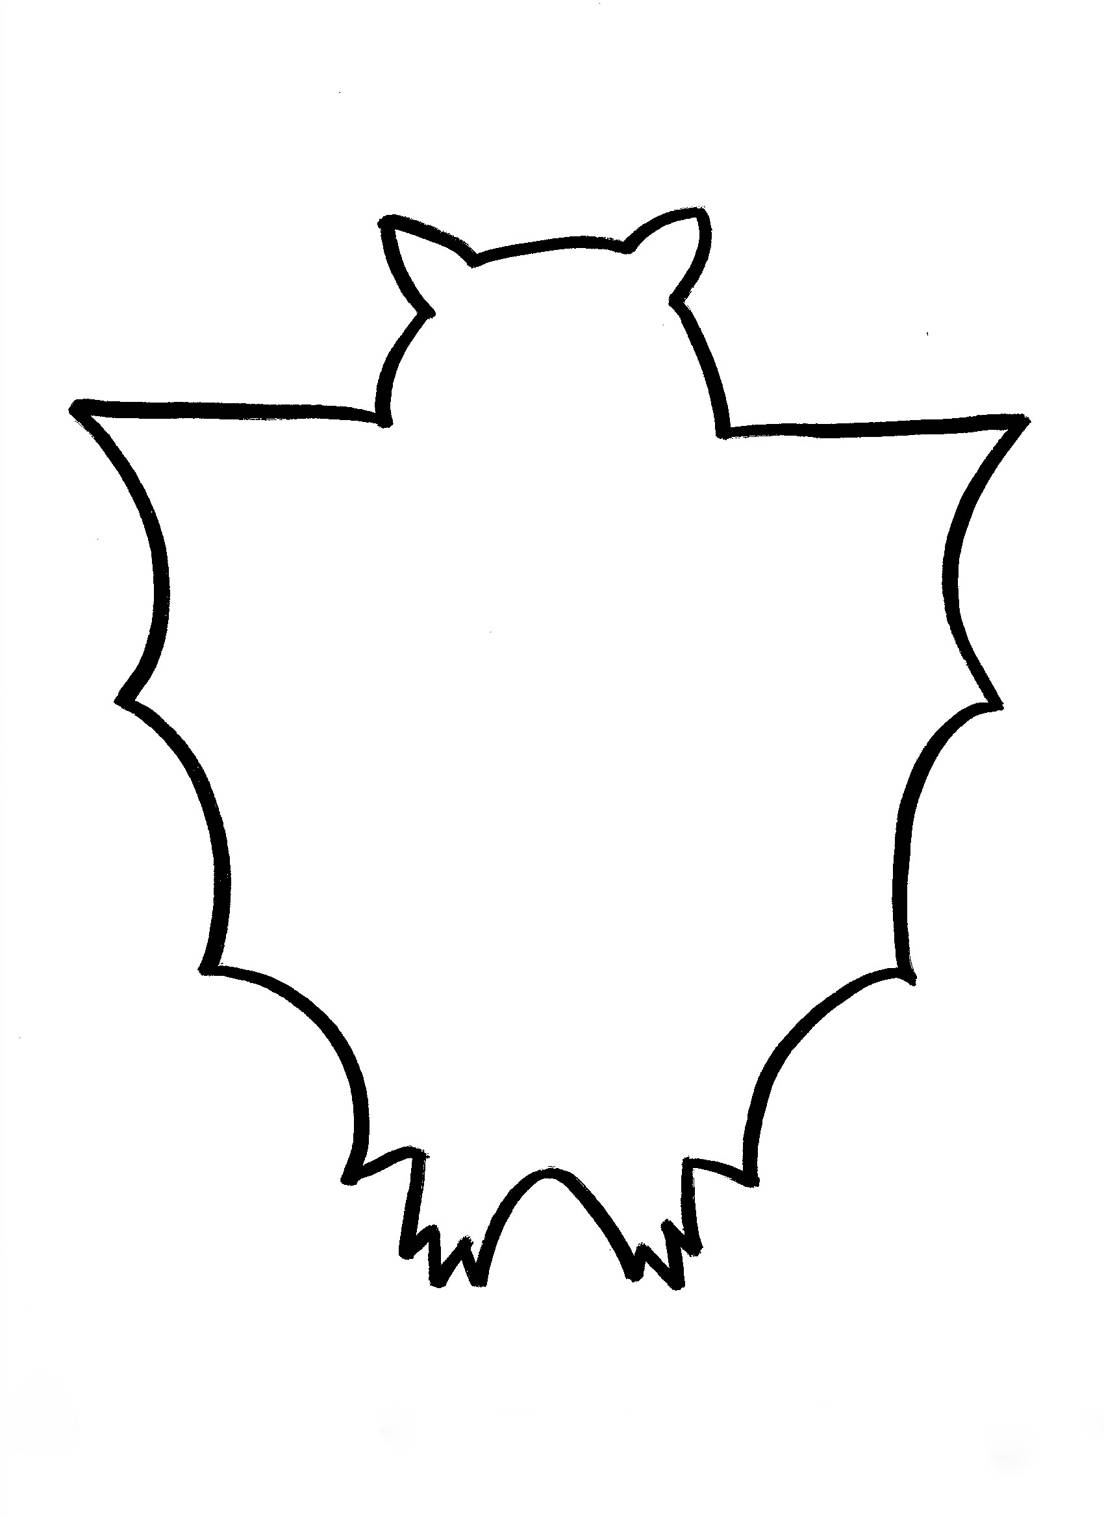 Bat outline clipart best for Bat candy bar wrapper template